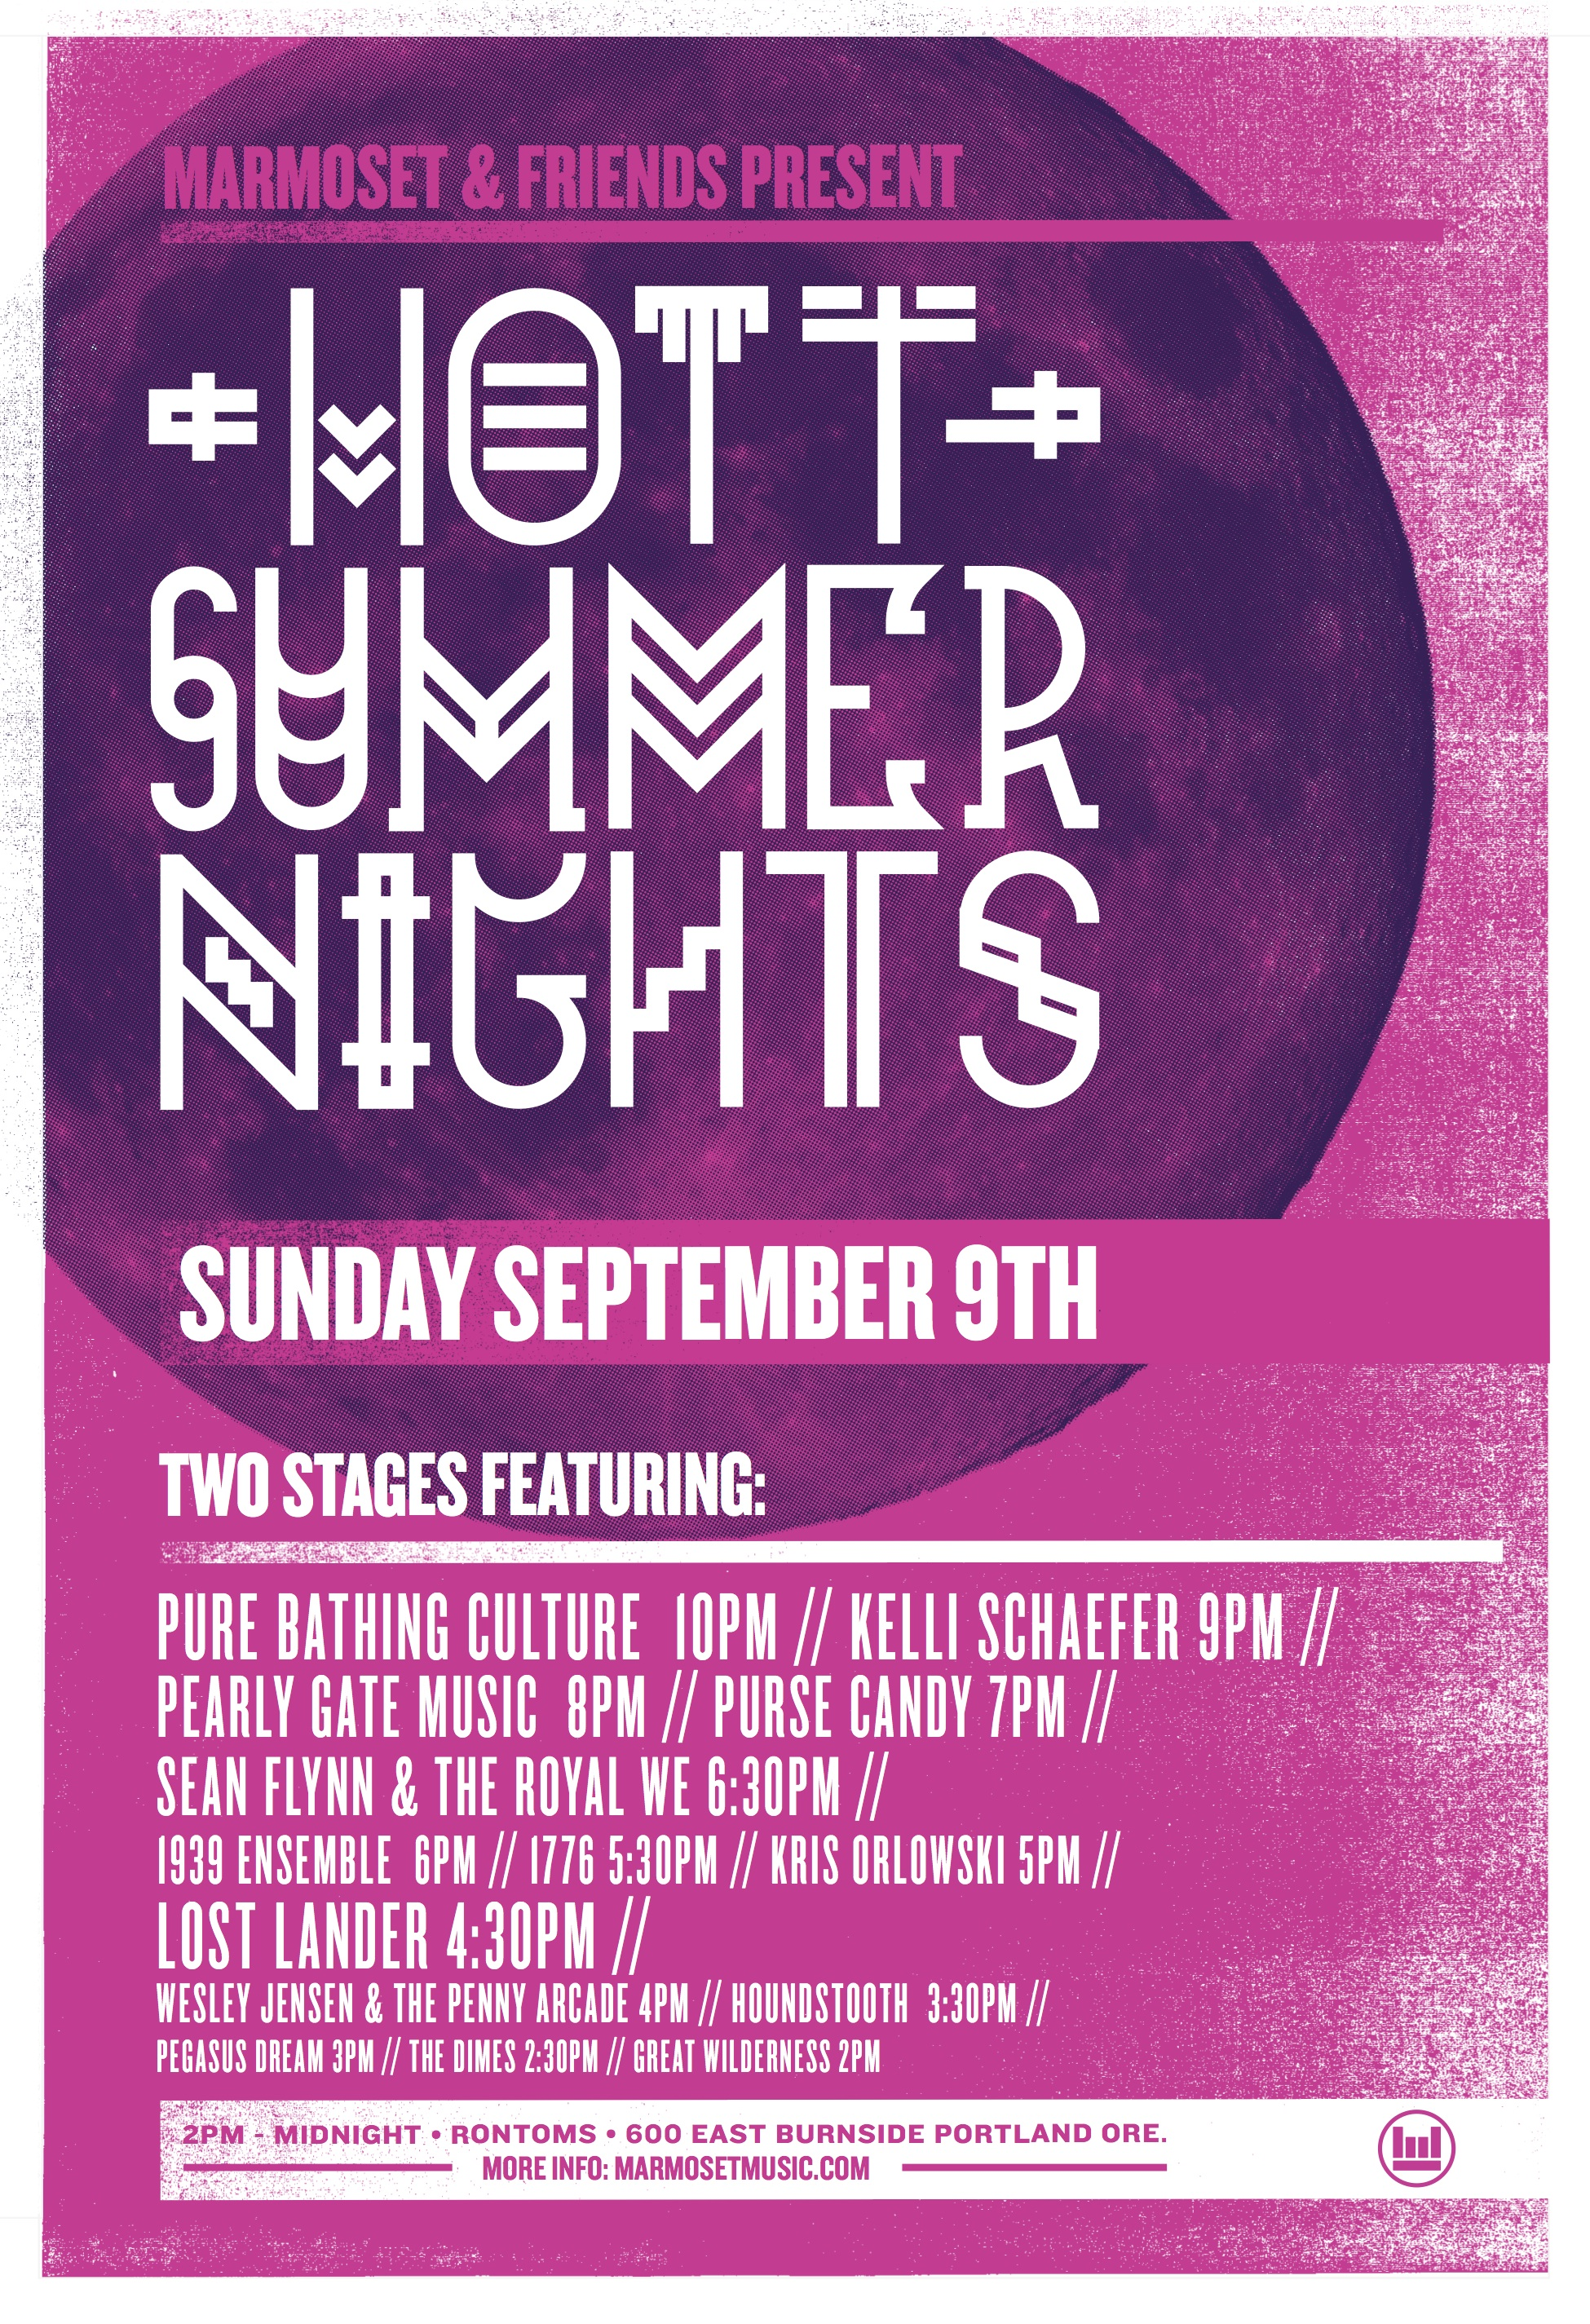 MusicFest NW Party 2012 // Hott Summer Nights // Marmoset Music // Portland, Oregon // MFNW